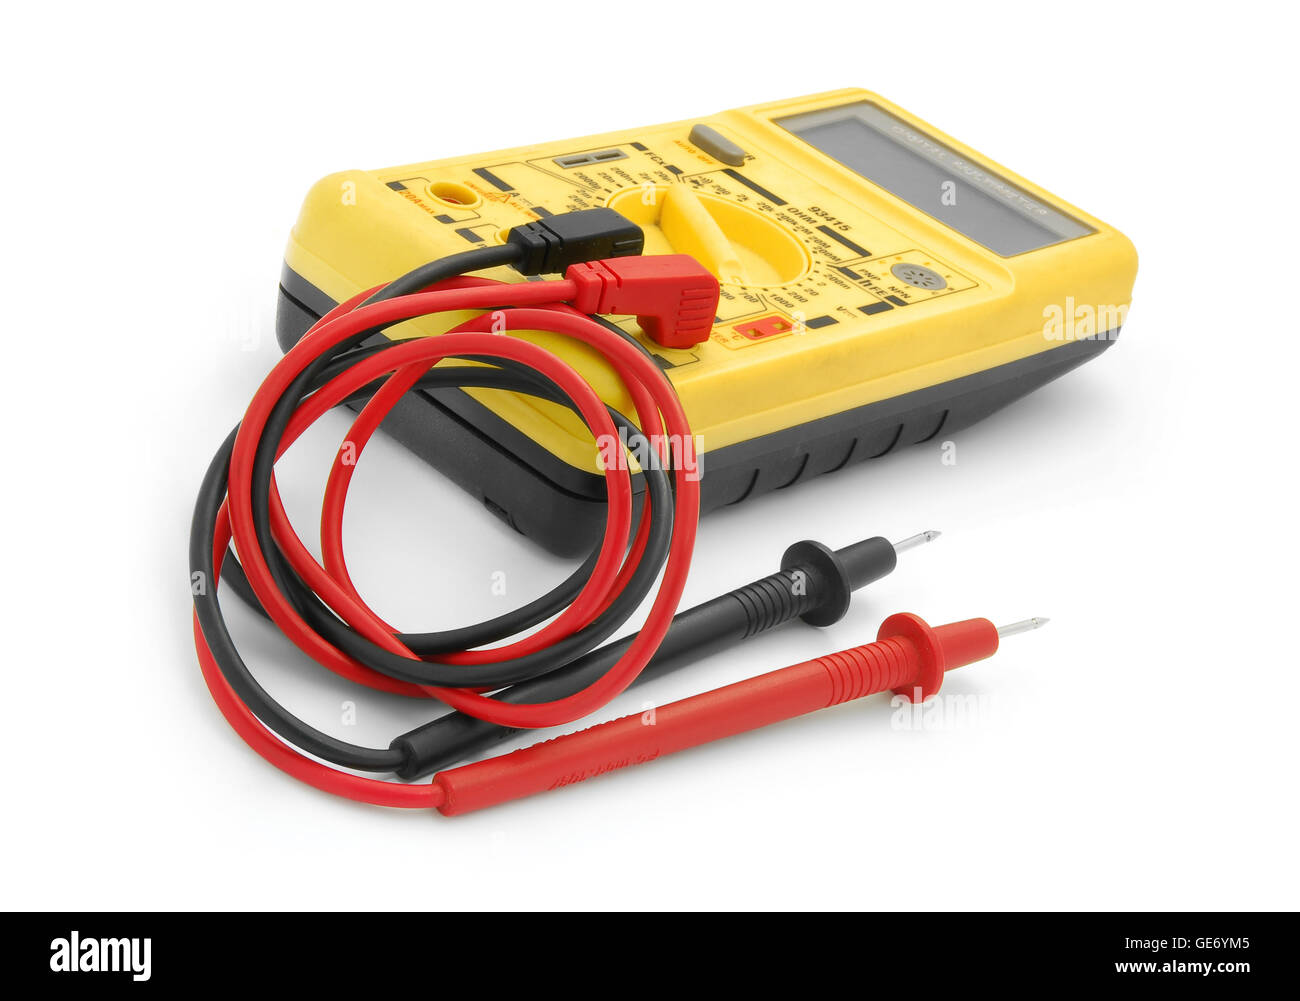 multimeter - Stock Image